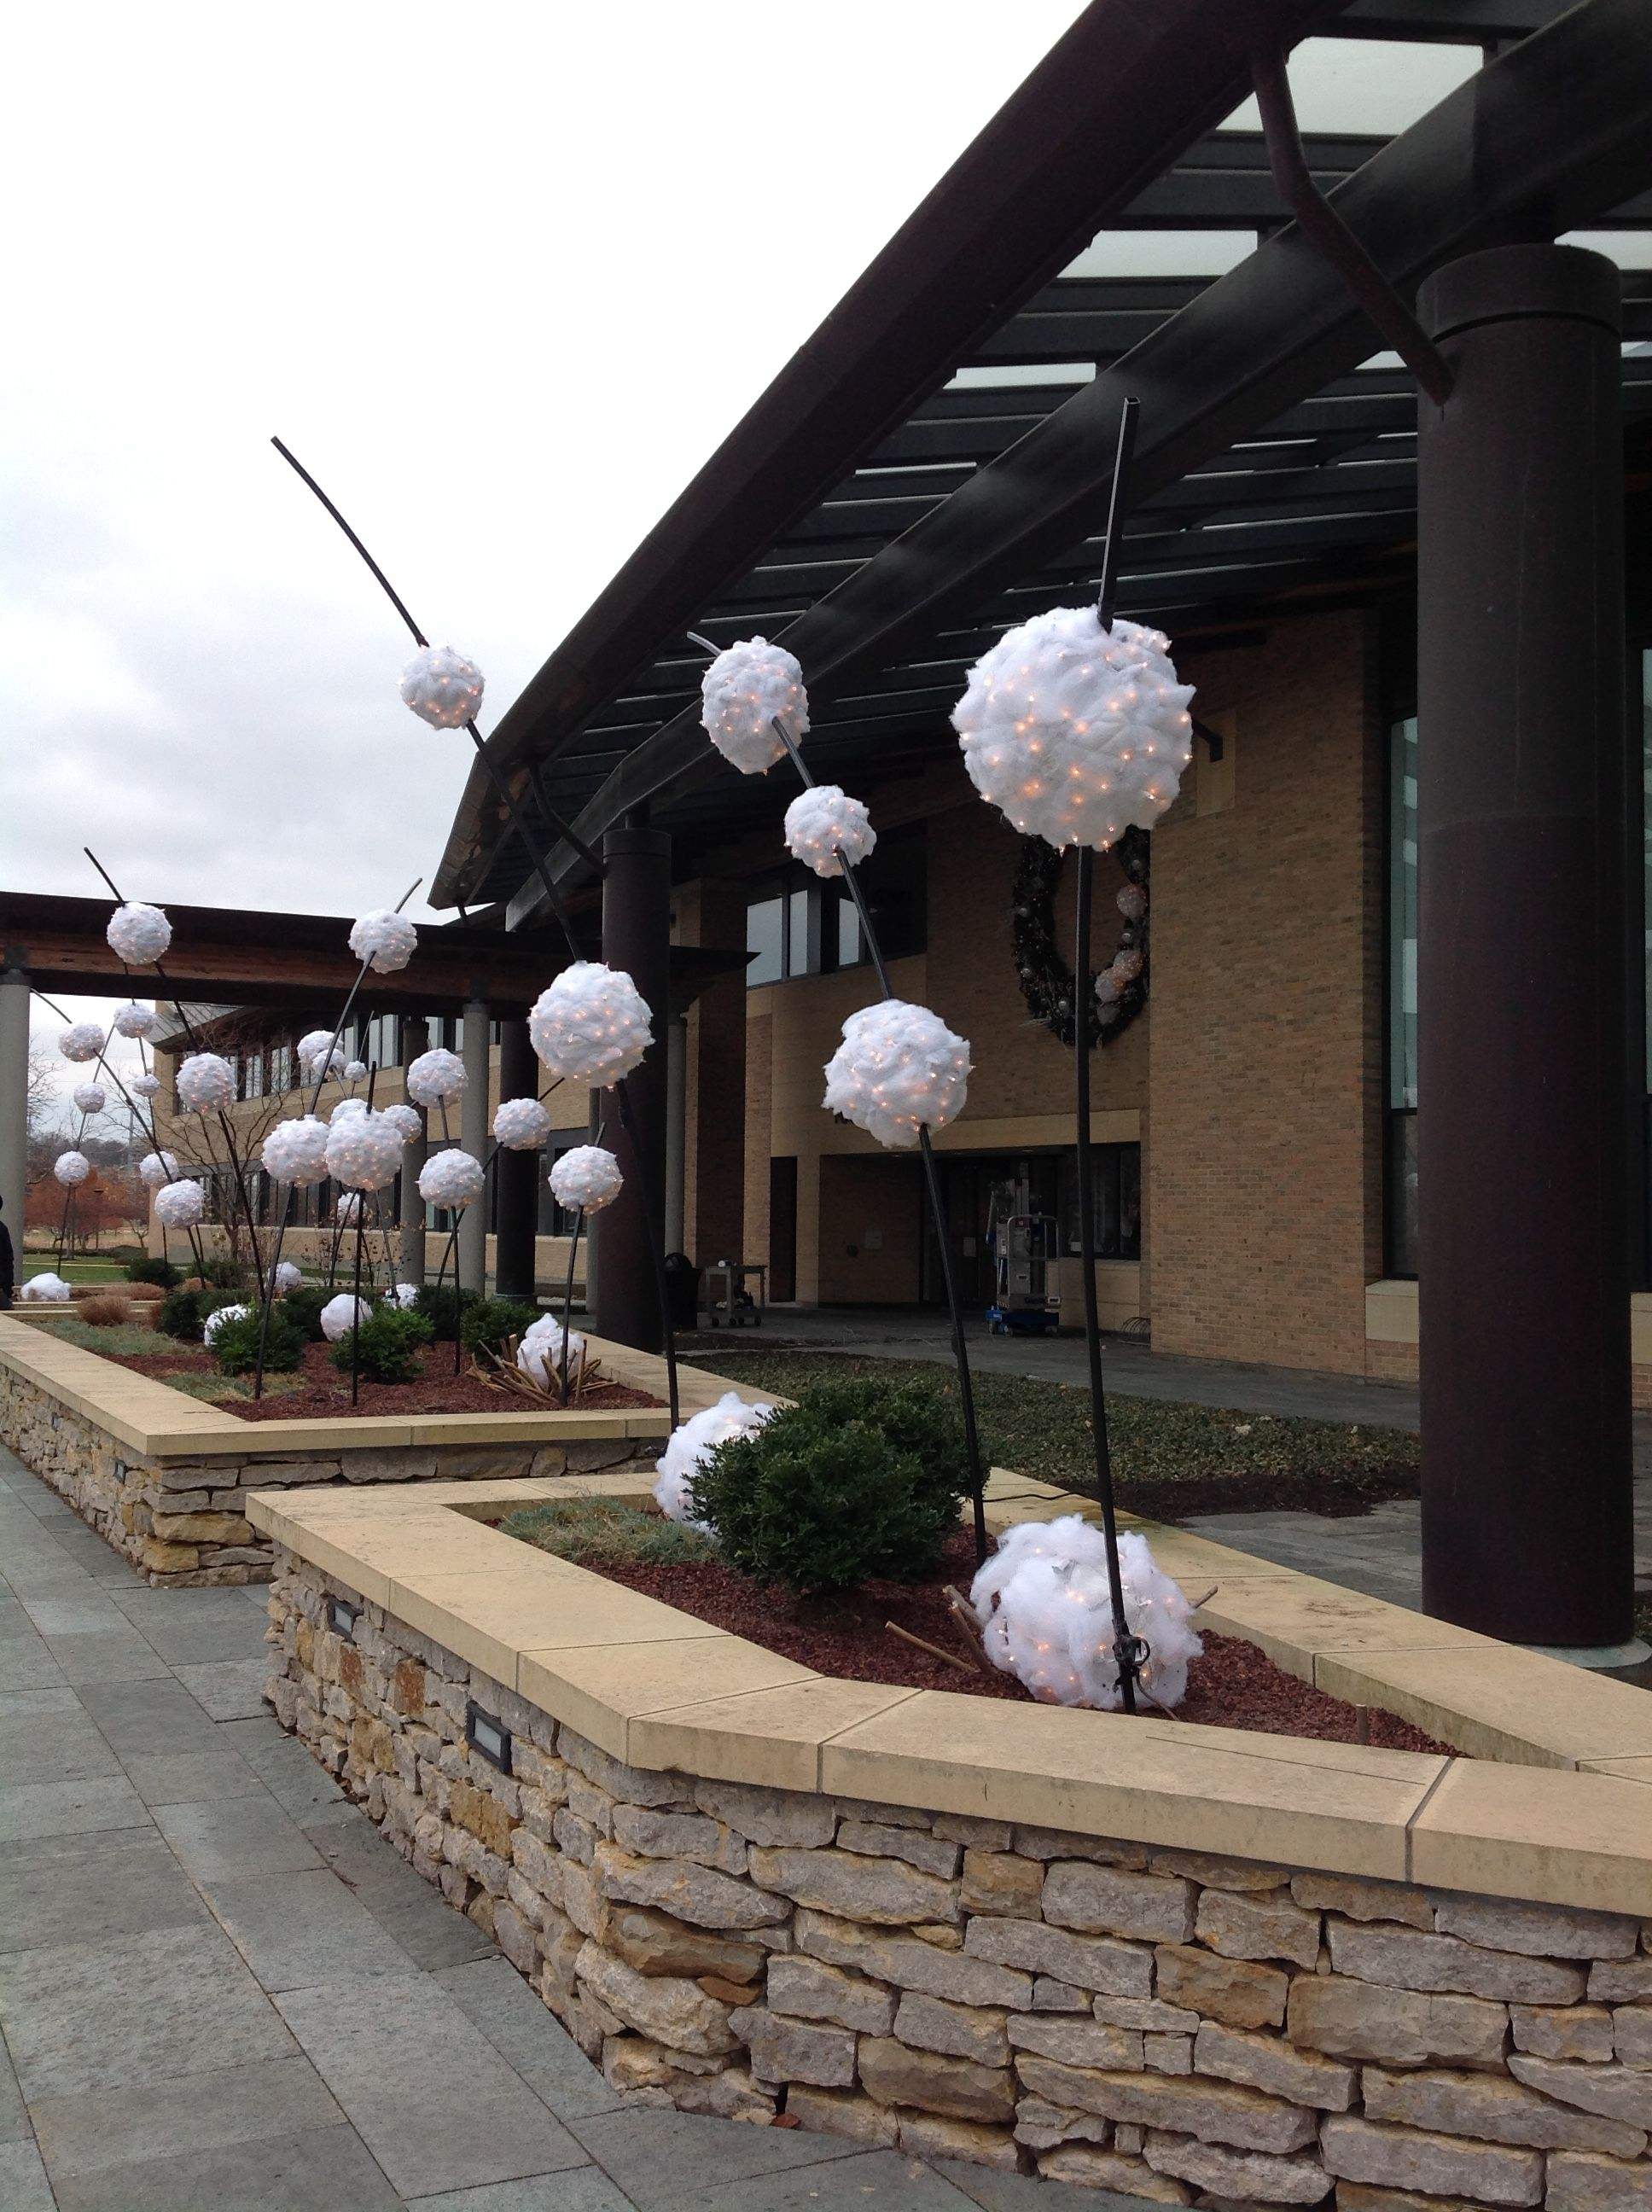 Giant Snowballs & Lights for Outdoor Decor